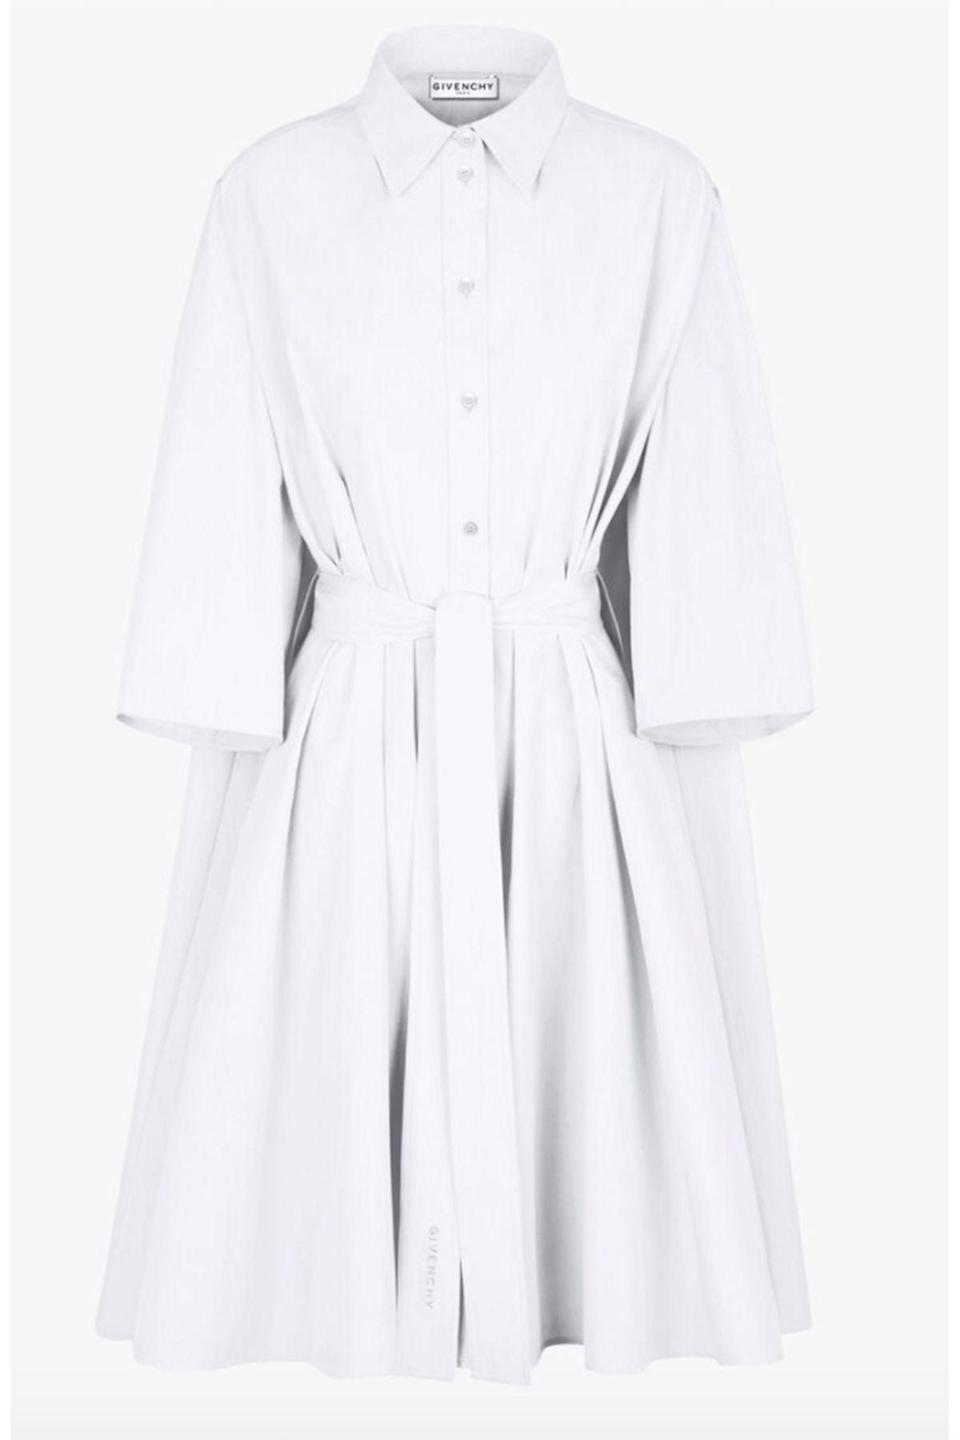 "<p><strong>Givenchy</strong></p><p>givenchy.com</p><p><strong>$1390.00</strong></p><p><a href=""https://www.givenchy.com/us/en-US/belted-shirt-dress-in-popeline/3665963470726.html?gclid=Cj0KCQiA0fr_BRDaARIsAABw4EvIuCoAuy5z0UJPR0tBqhems7VCeRwHRVbMDXBWx_HZOapNm_eAFE0aApBUEALw_wcB"" rel=""nofollow noopener"" target=""_blank"" data-ylk=""slk:Shop Now"" class=""link rapid-noclick-resp"">Shop Now</a></p><p>Known for its fit and classic cut, the Givenchy dress will be a staple in your wardrobe for years to come.</p>"